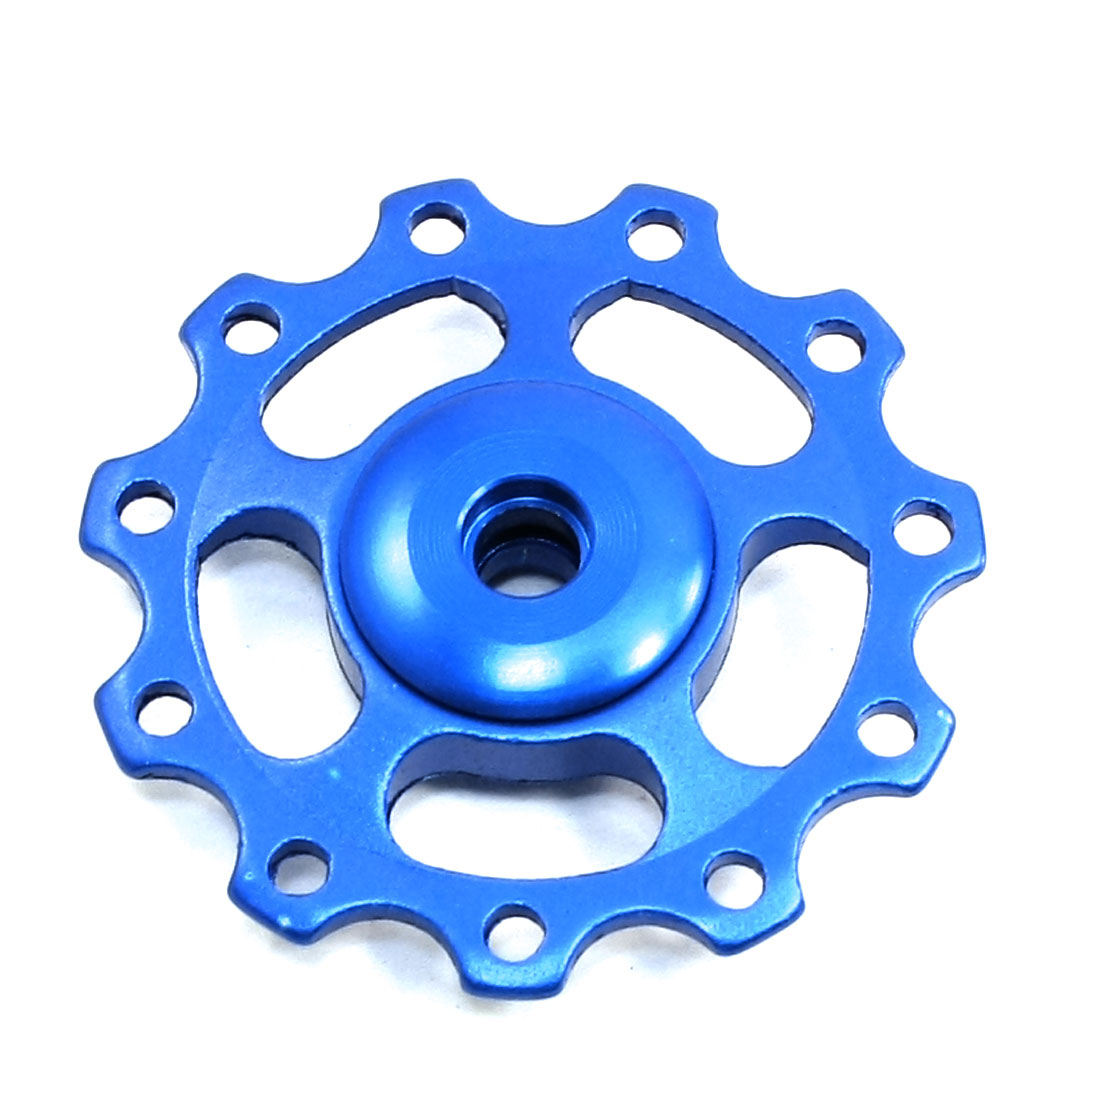 Alloy Royal Blue Mountain Bicycle Bike Rear Derailleur Pulley 11T for Sram